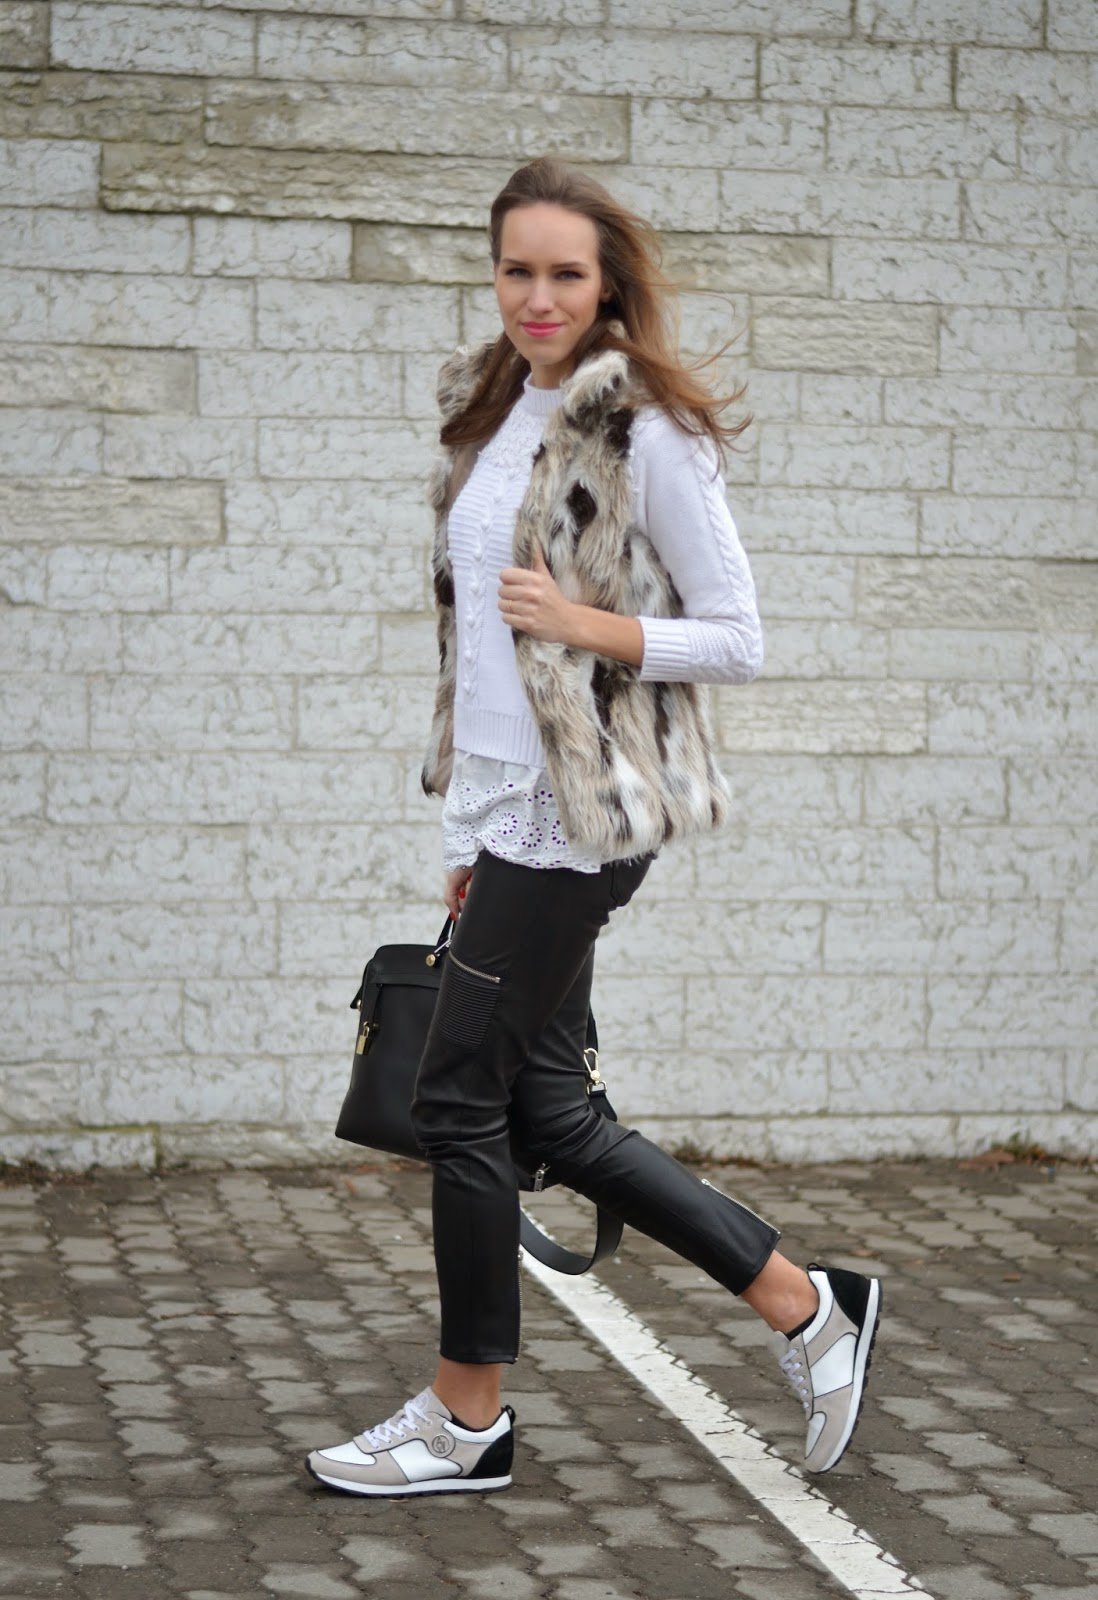 armani-white-sneakers-zara-black-leather-pants-casual-outfit kristjaana mere